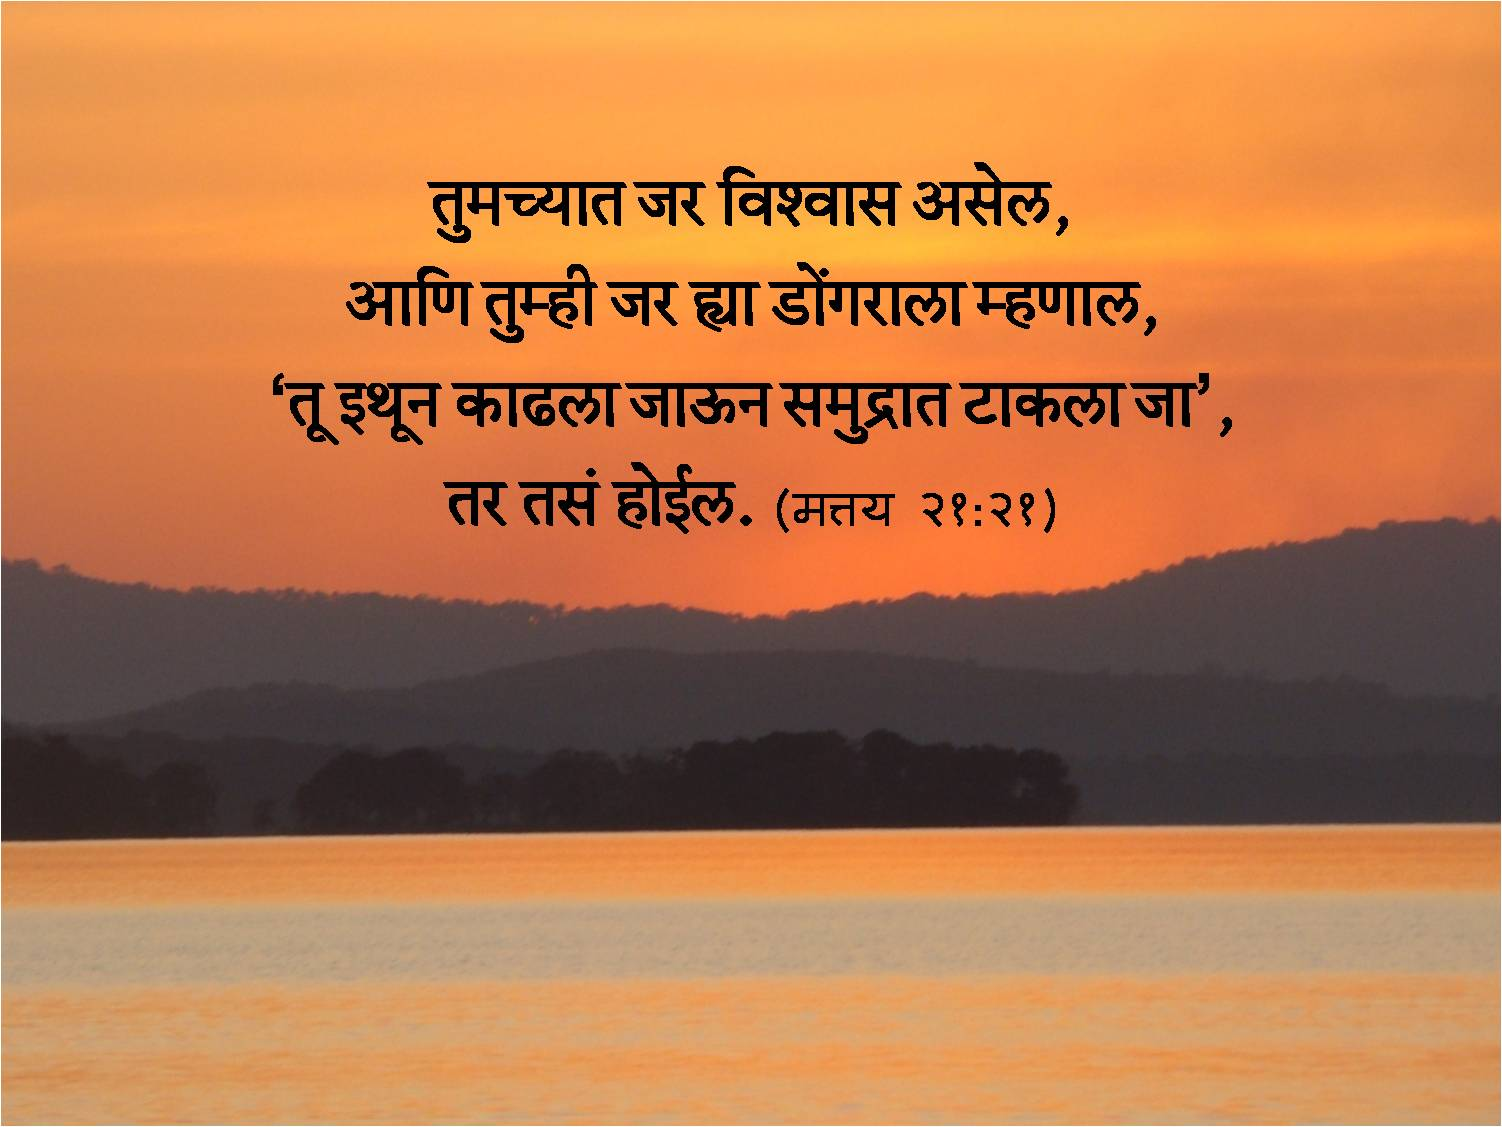 Marathi Bible Wallpapers (34)